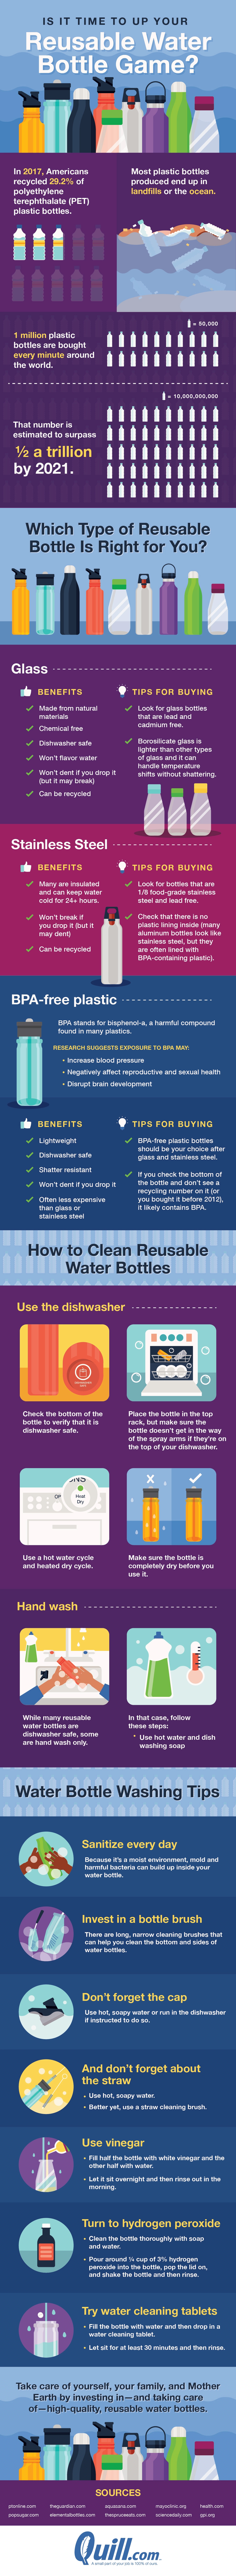 Still Using Reusable Plastic Water Bottles? Time to Move On! - Infographic